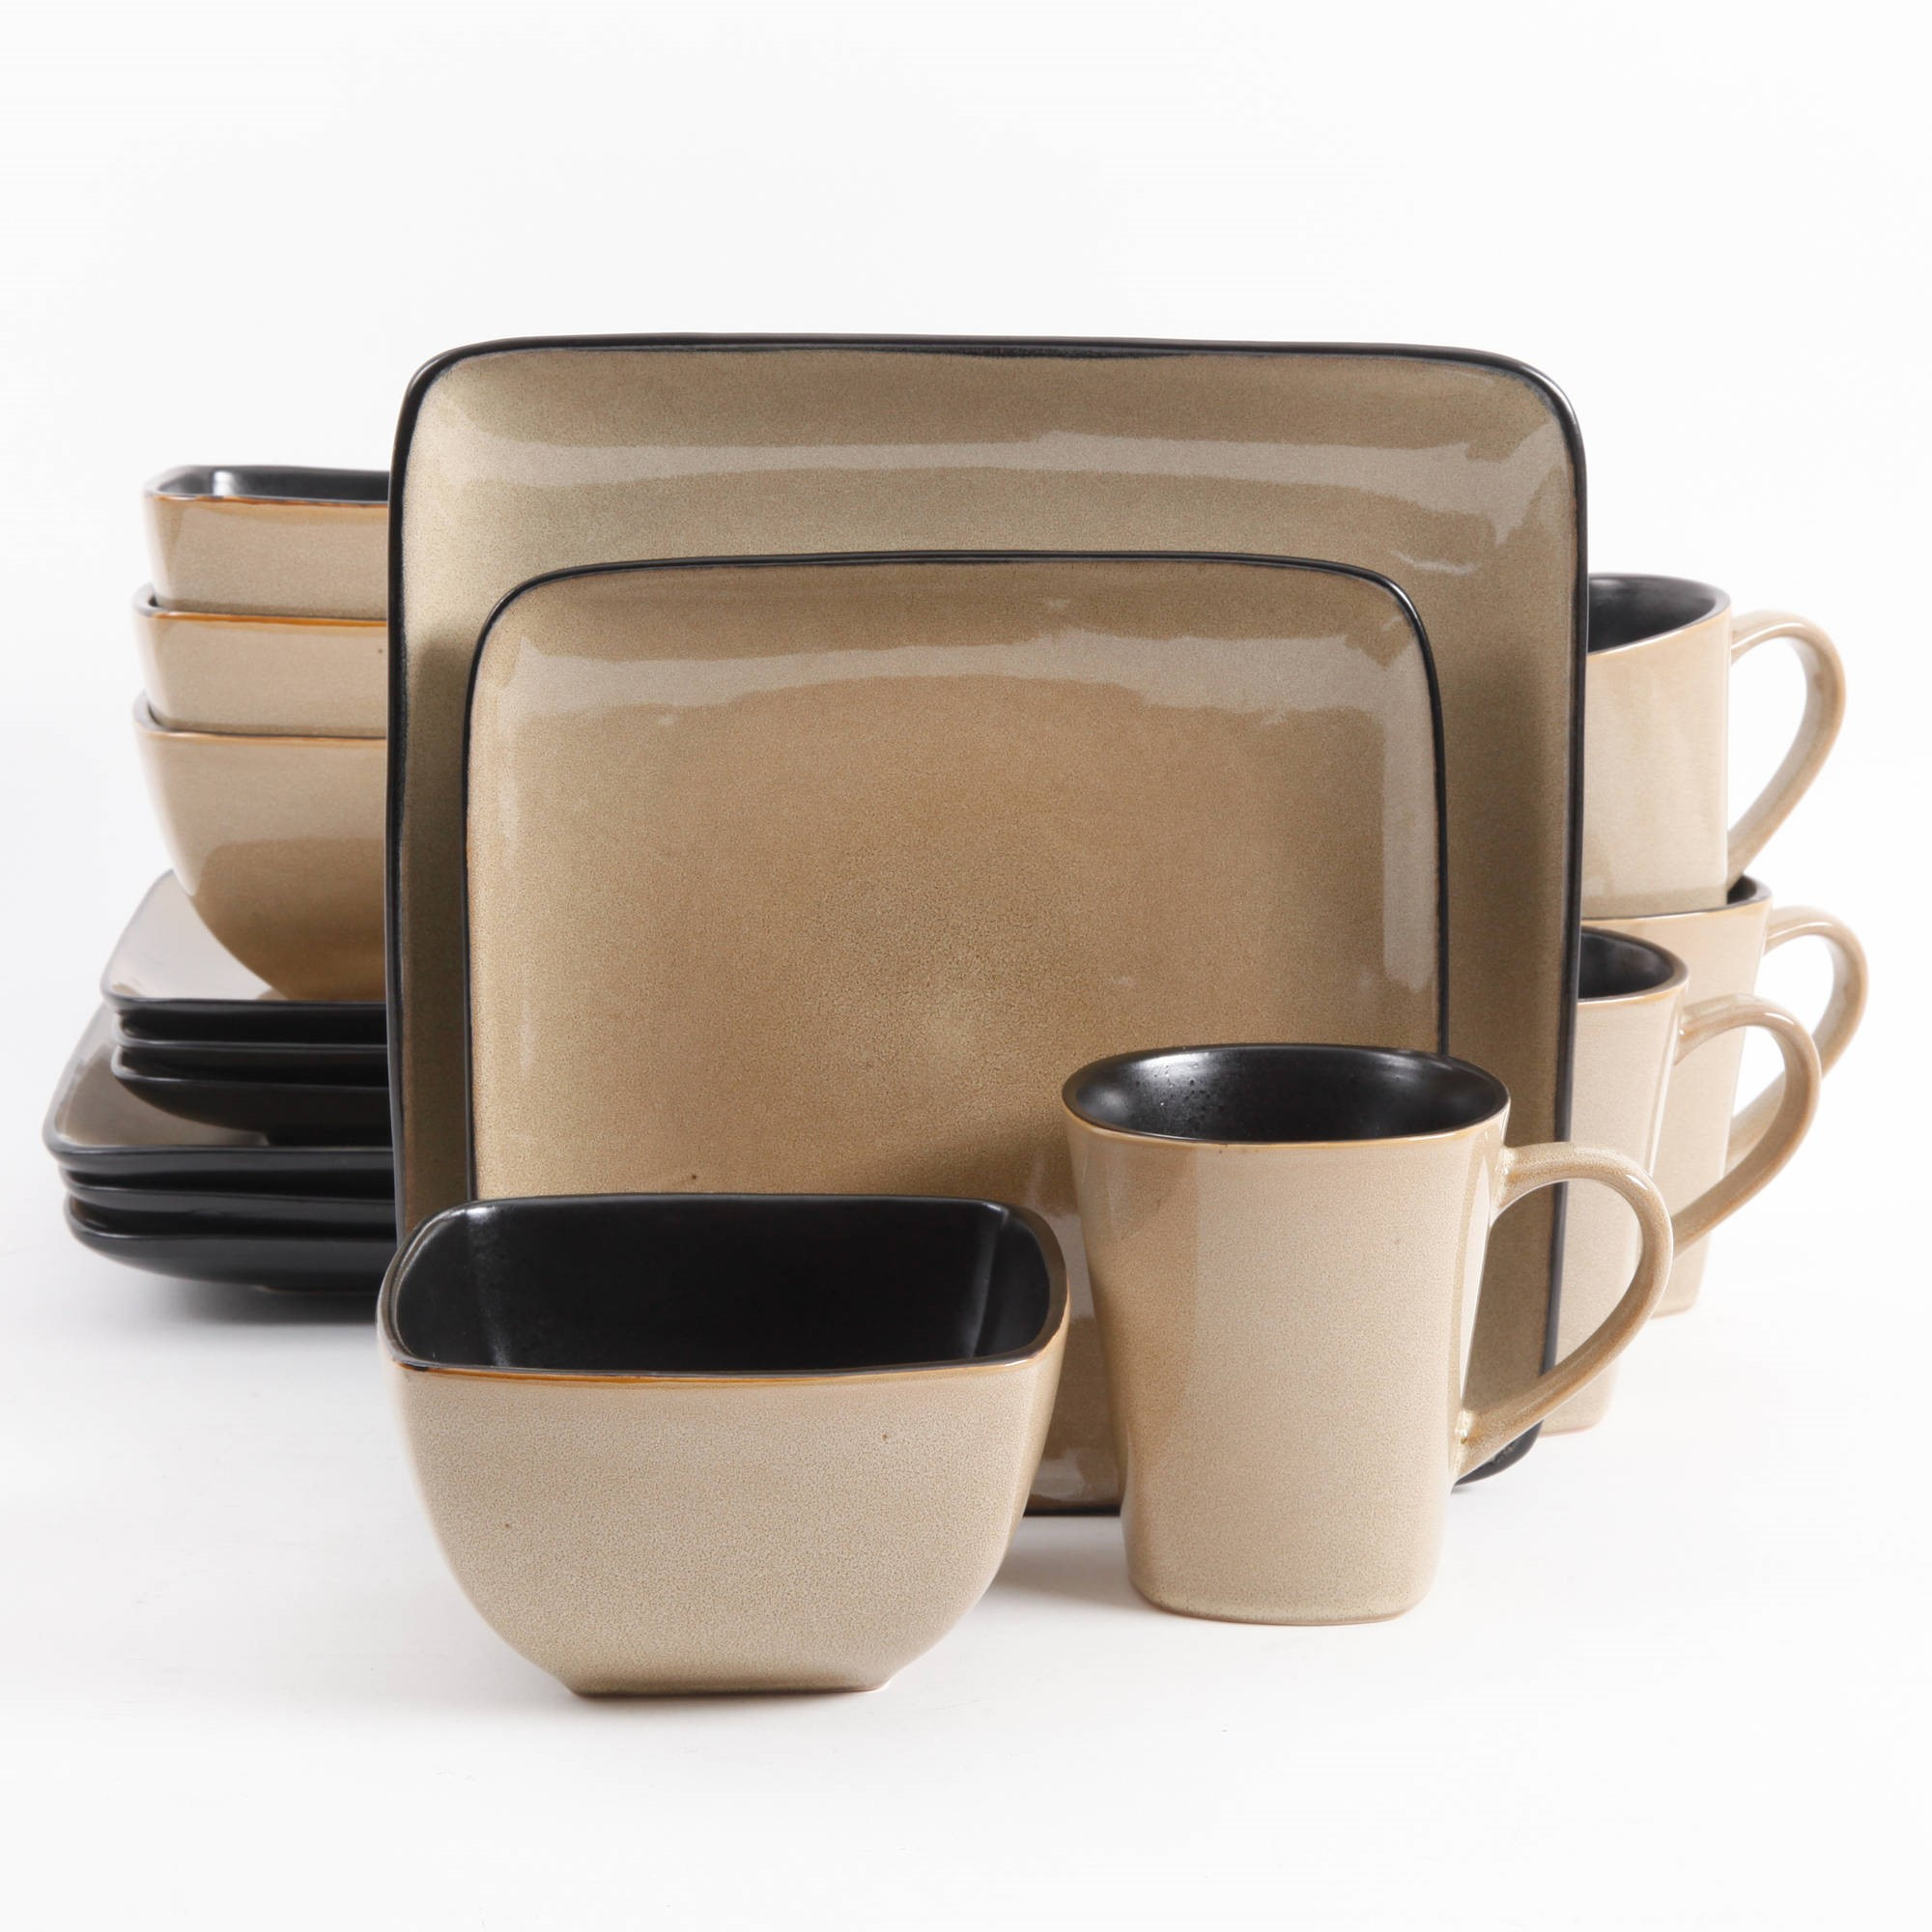 Gibson Everyday Rave Square 16-Piece Dinnerware Set Taupe  sc 1 st  Walmart & nonConfig